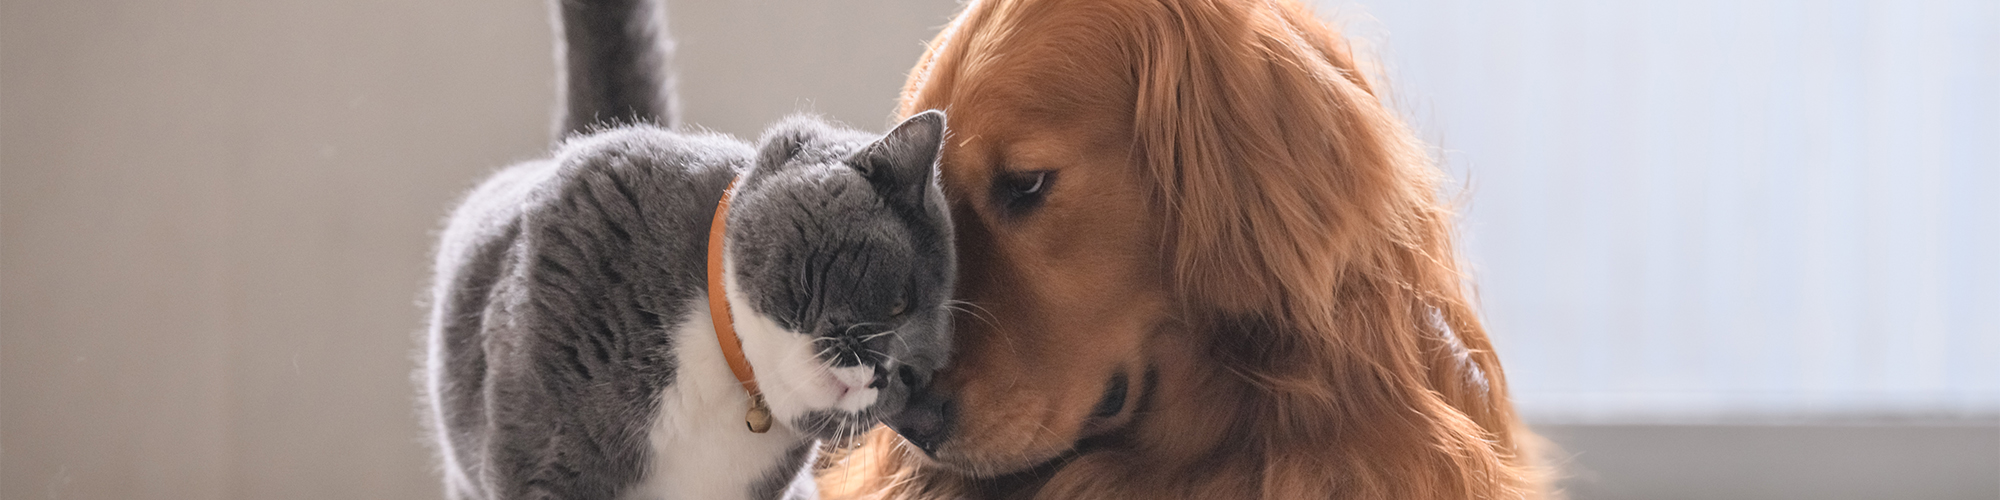 cat-and-dog-banner.jpg